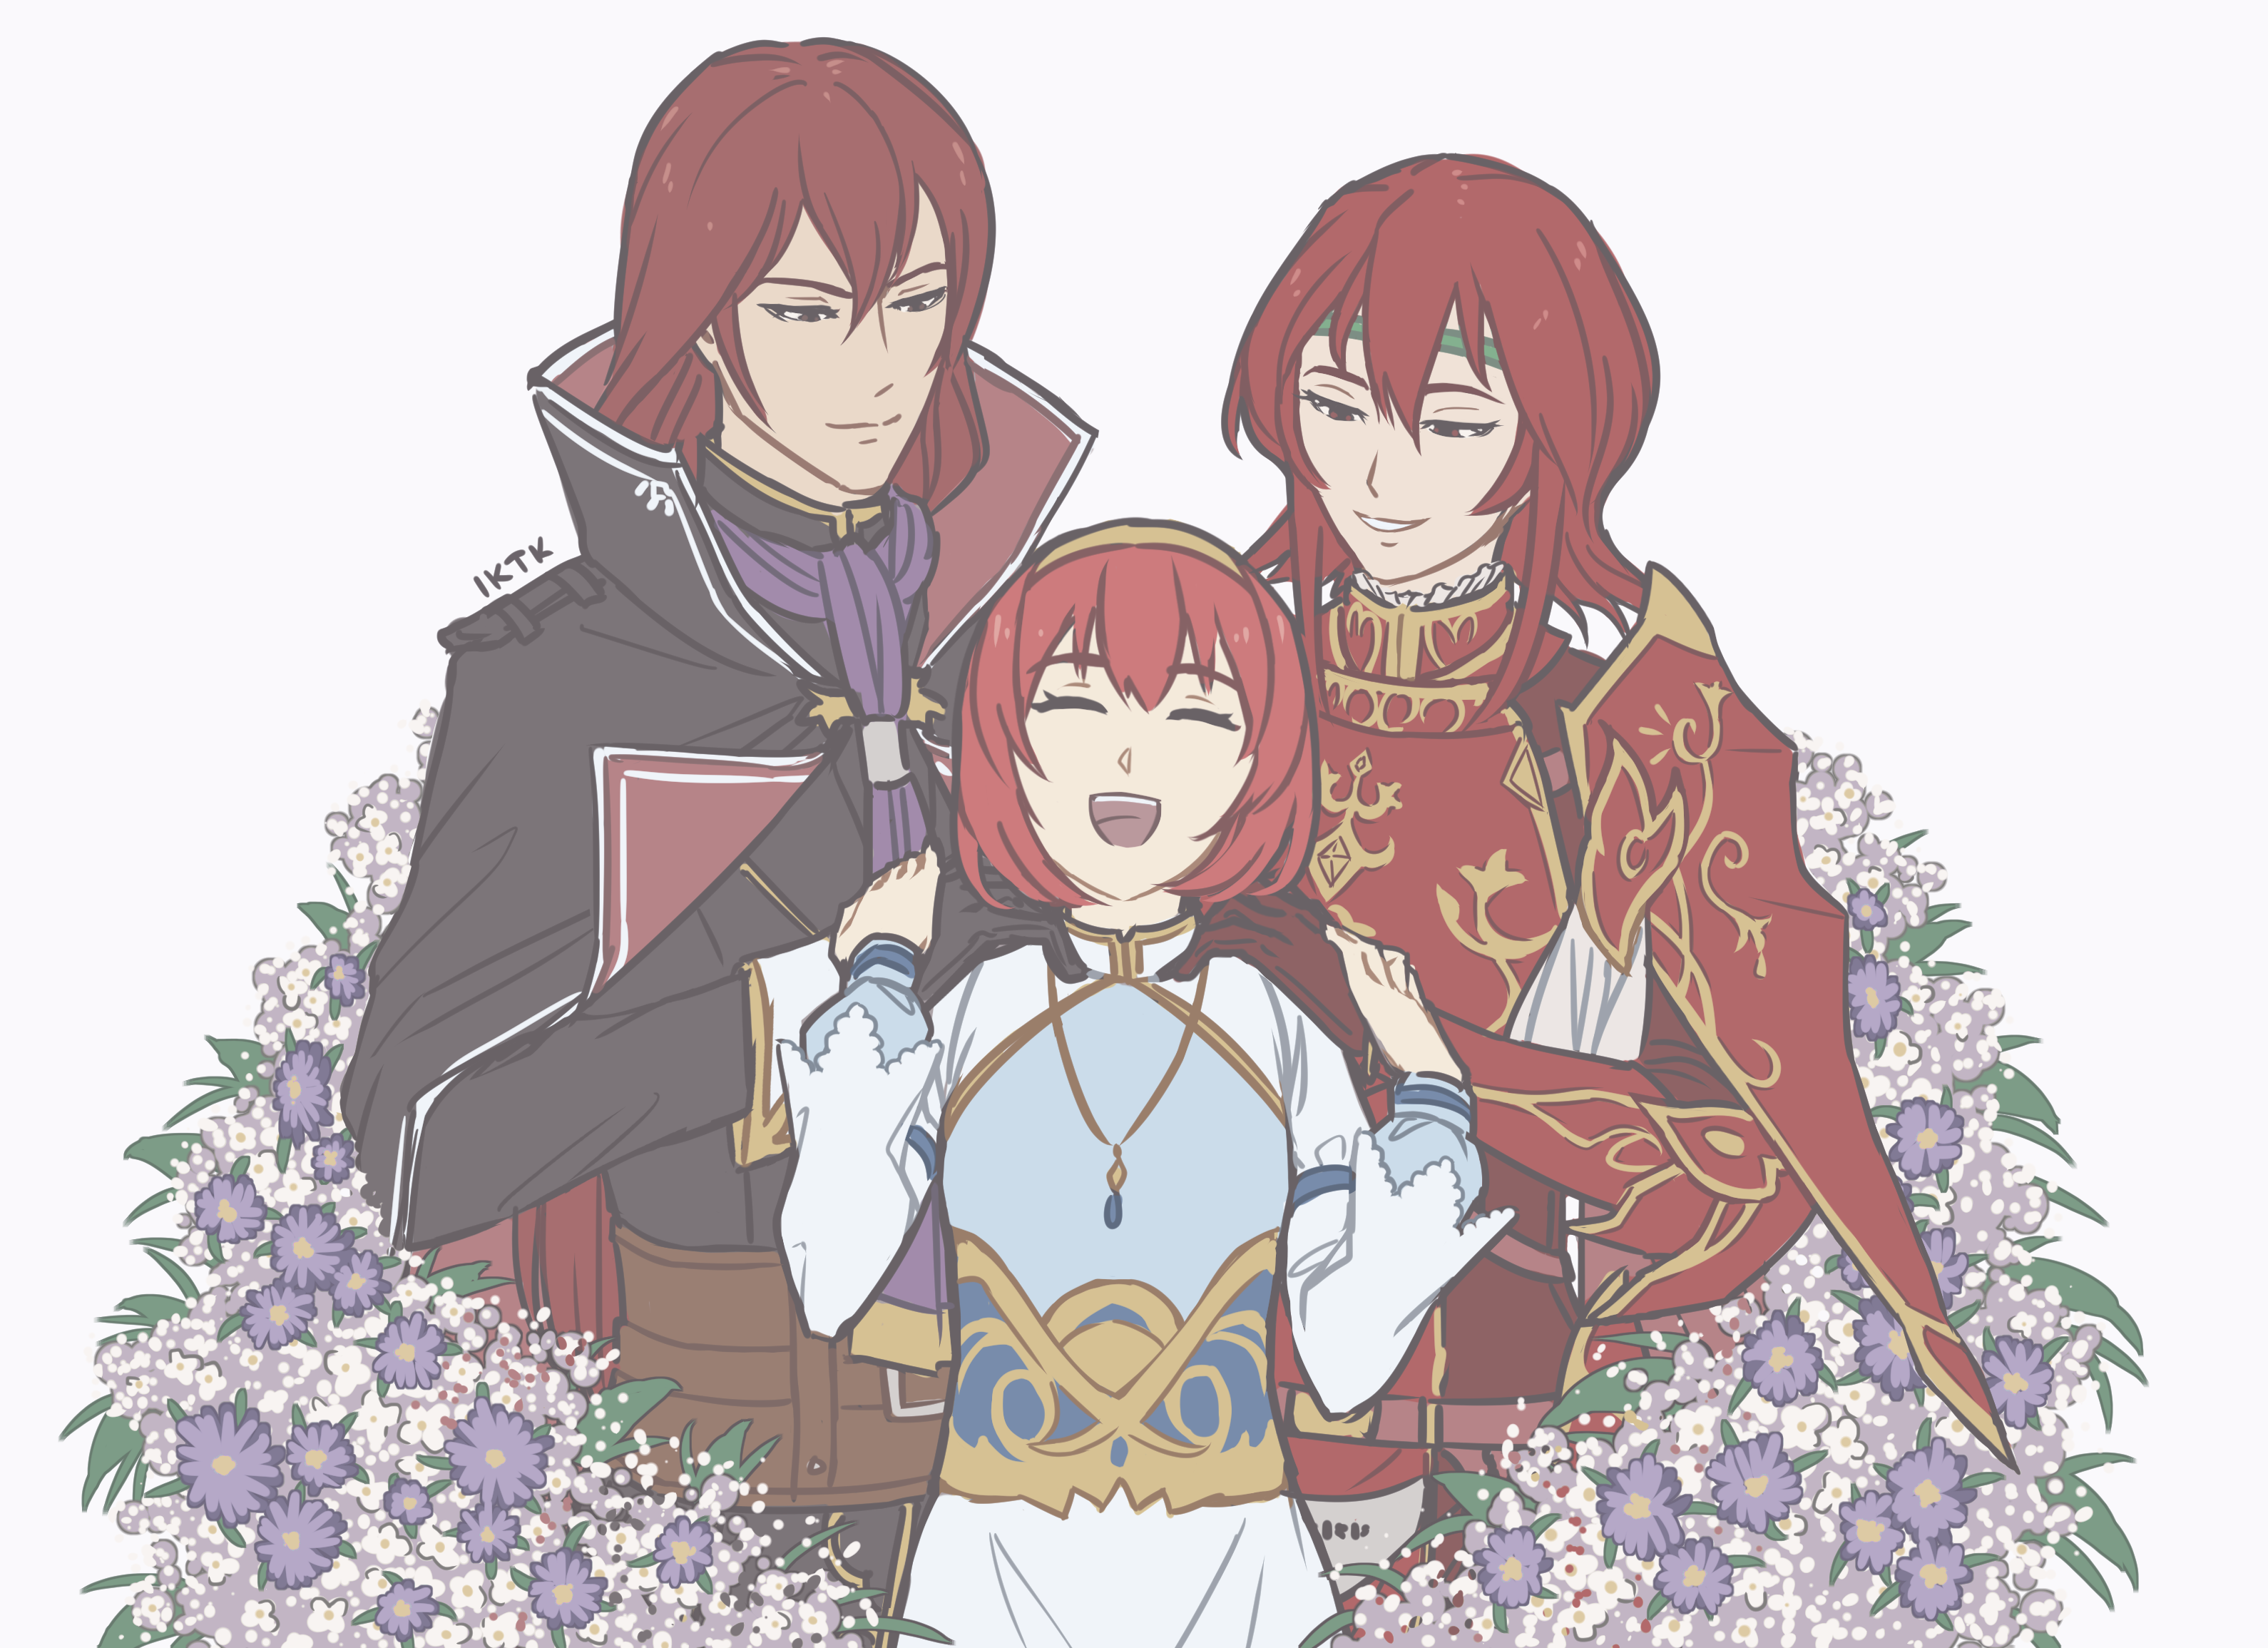 R Fireemblemheroes Wholesome Michalis Minerva And Maria Minerva Fire Emblem Fire Emblem Heroes Fire Emblem Fates Camilla Want to be notified of new releases in rrsharma21/fireemblemheroes? minerva fire emblem fire emblem heroes